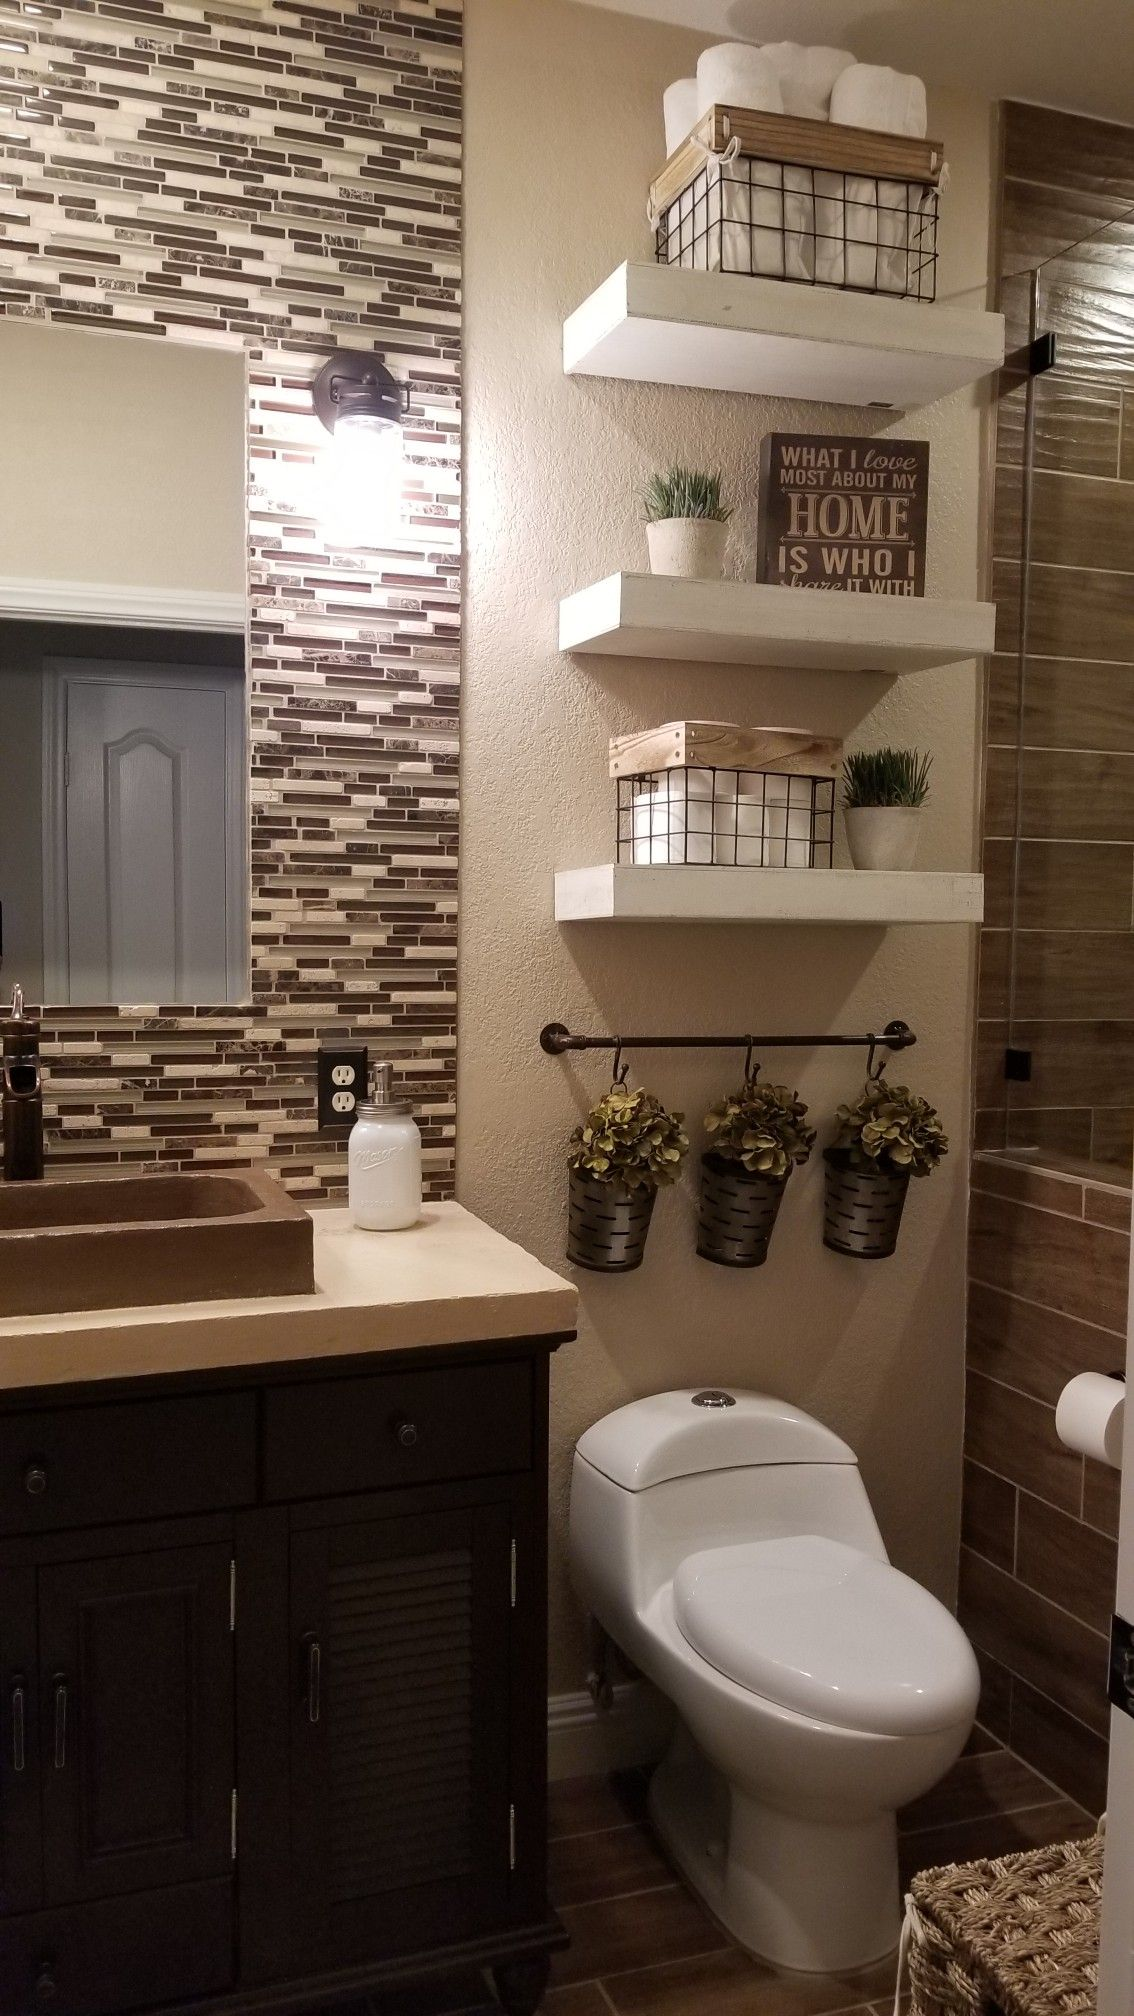 Guest bathroom decor half bathroom ideas in 2019 guest - How to decorate a guest bathroom ...